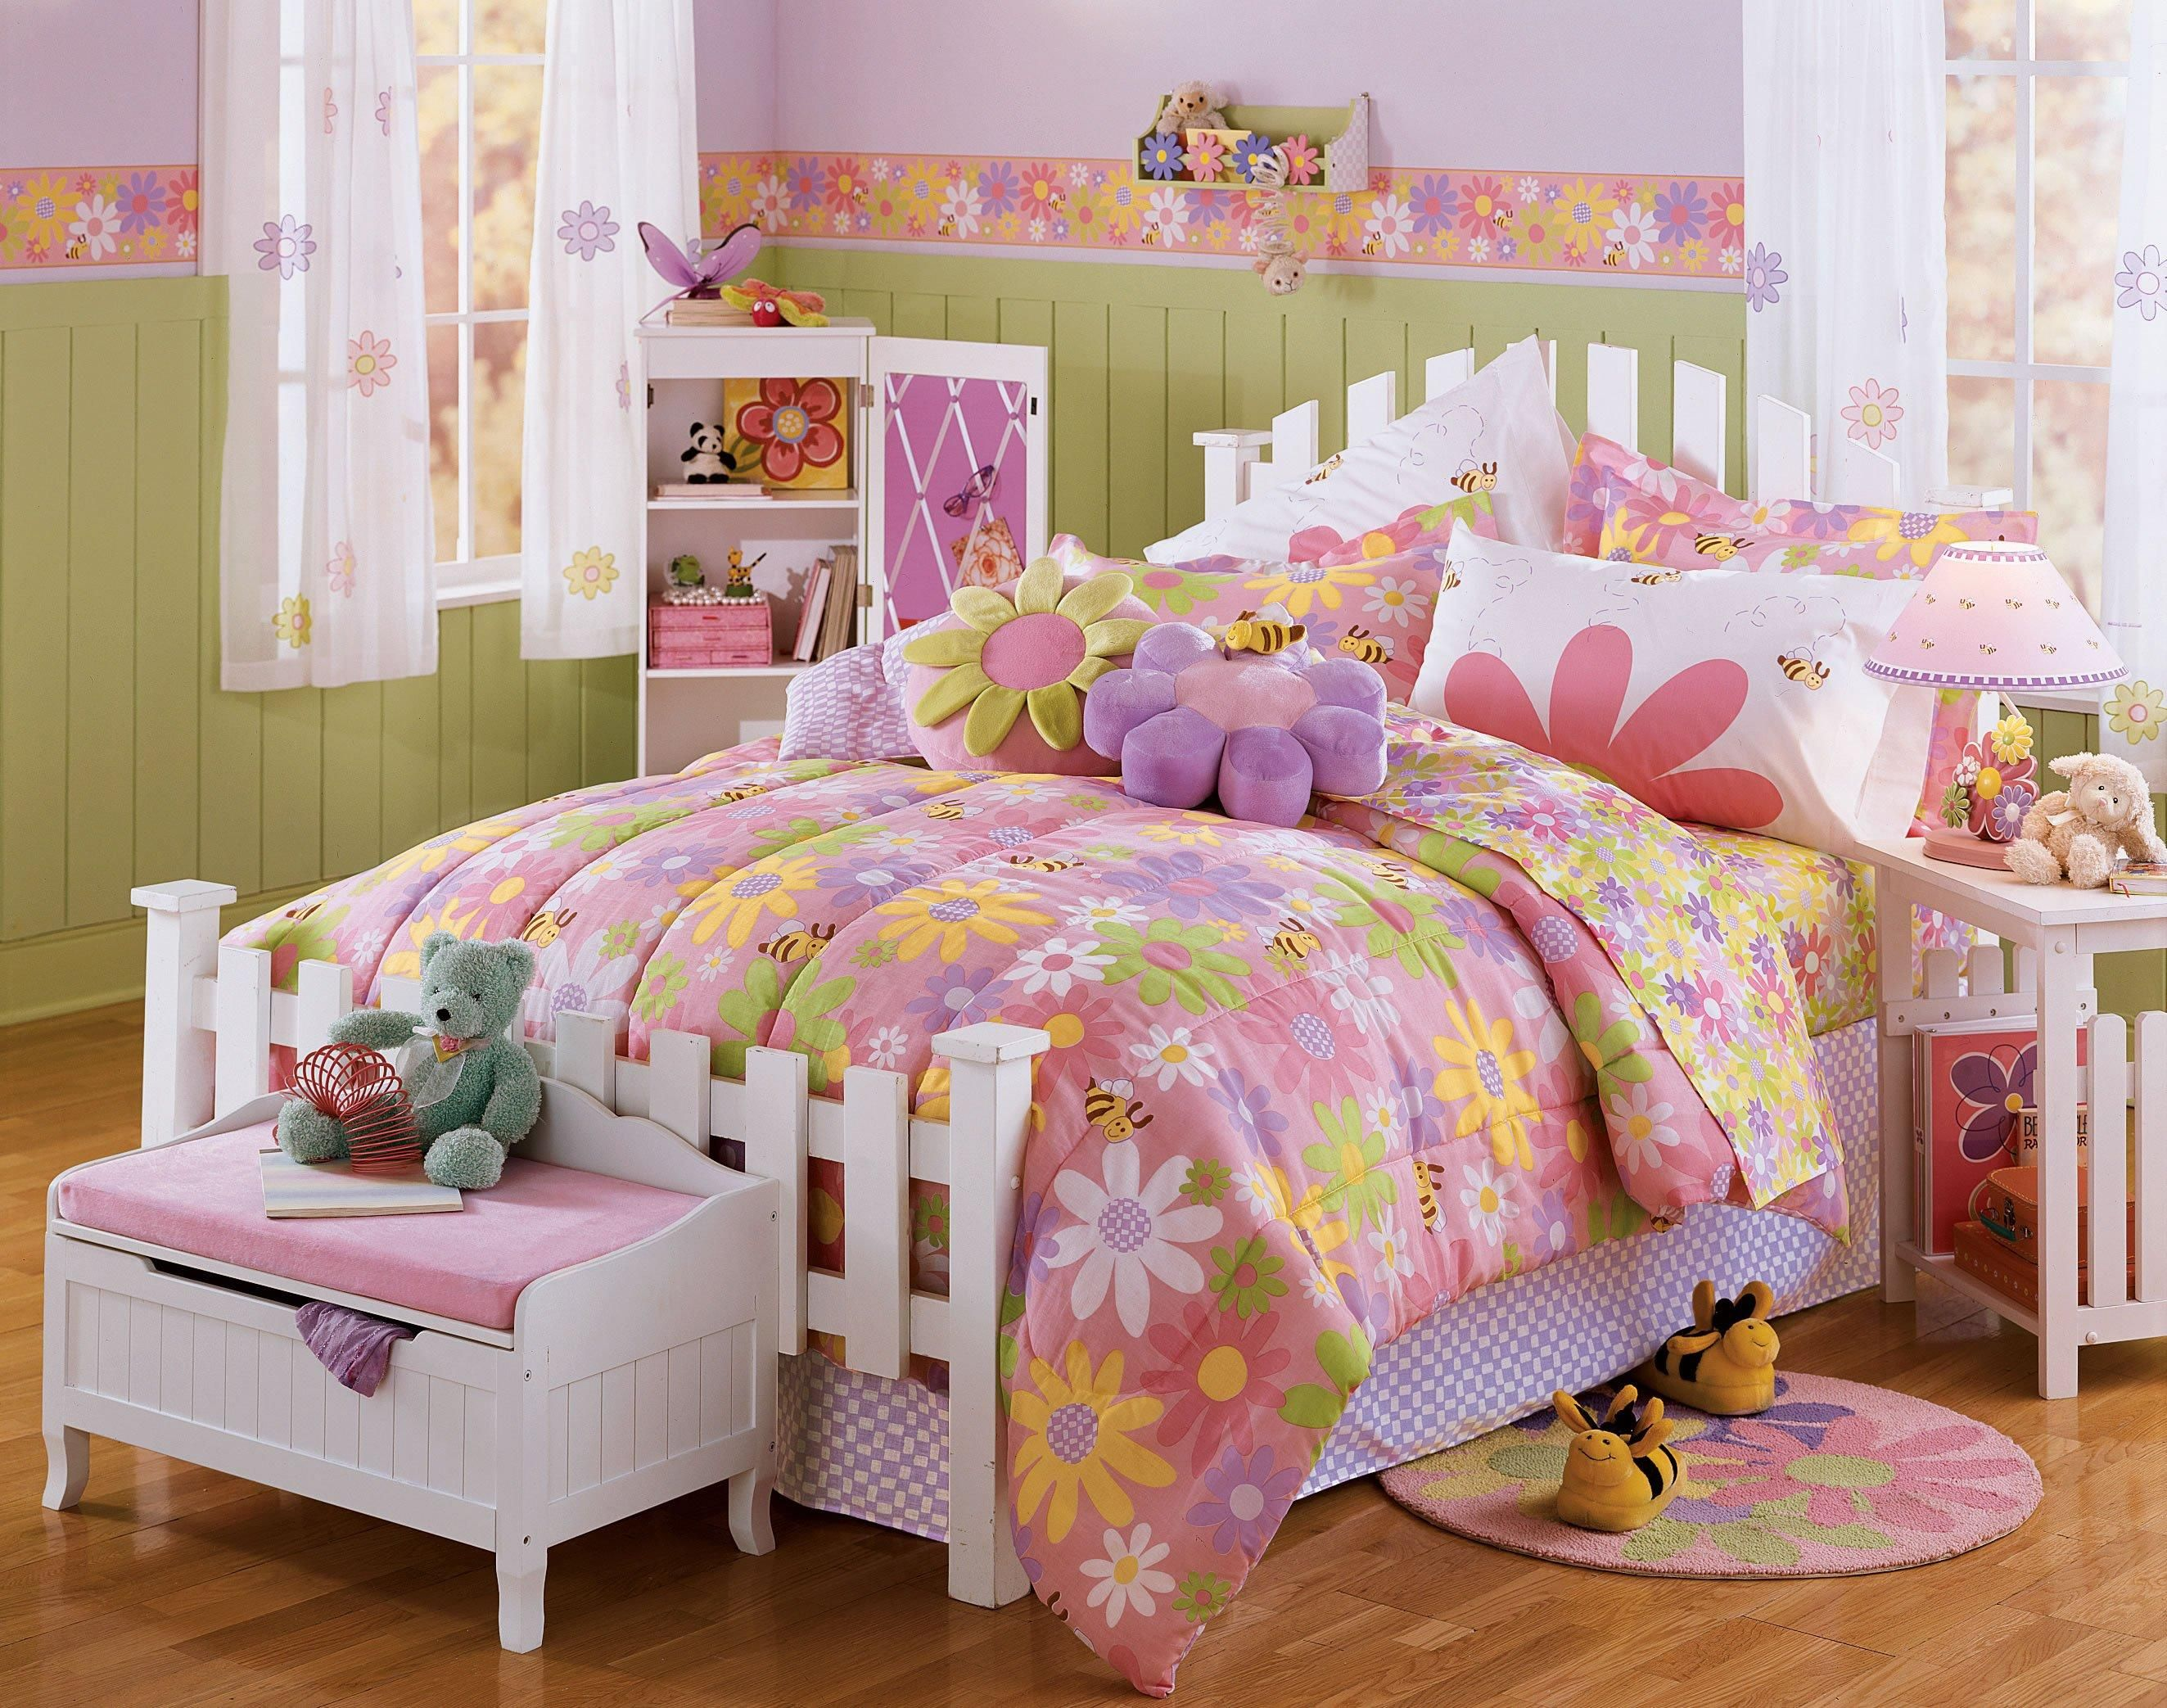 Pink bedrooms for little girls - Pastel Green And Pink Bedroom Http Rilane Com Decorating Ideas Little Girl